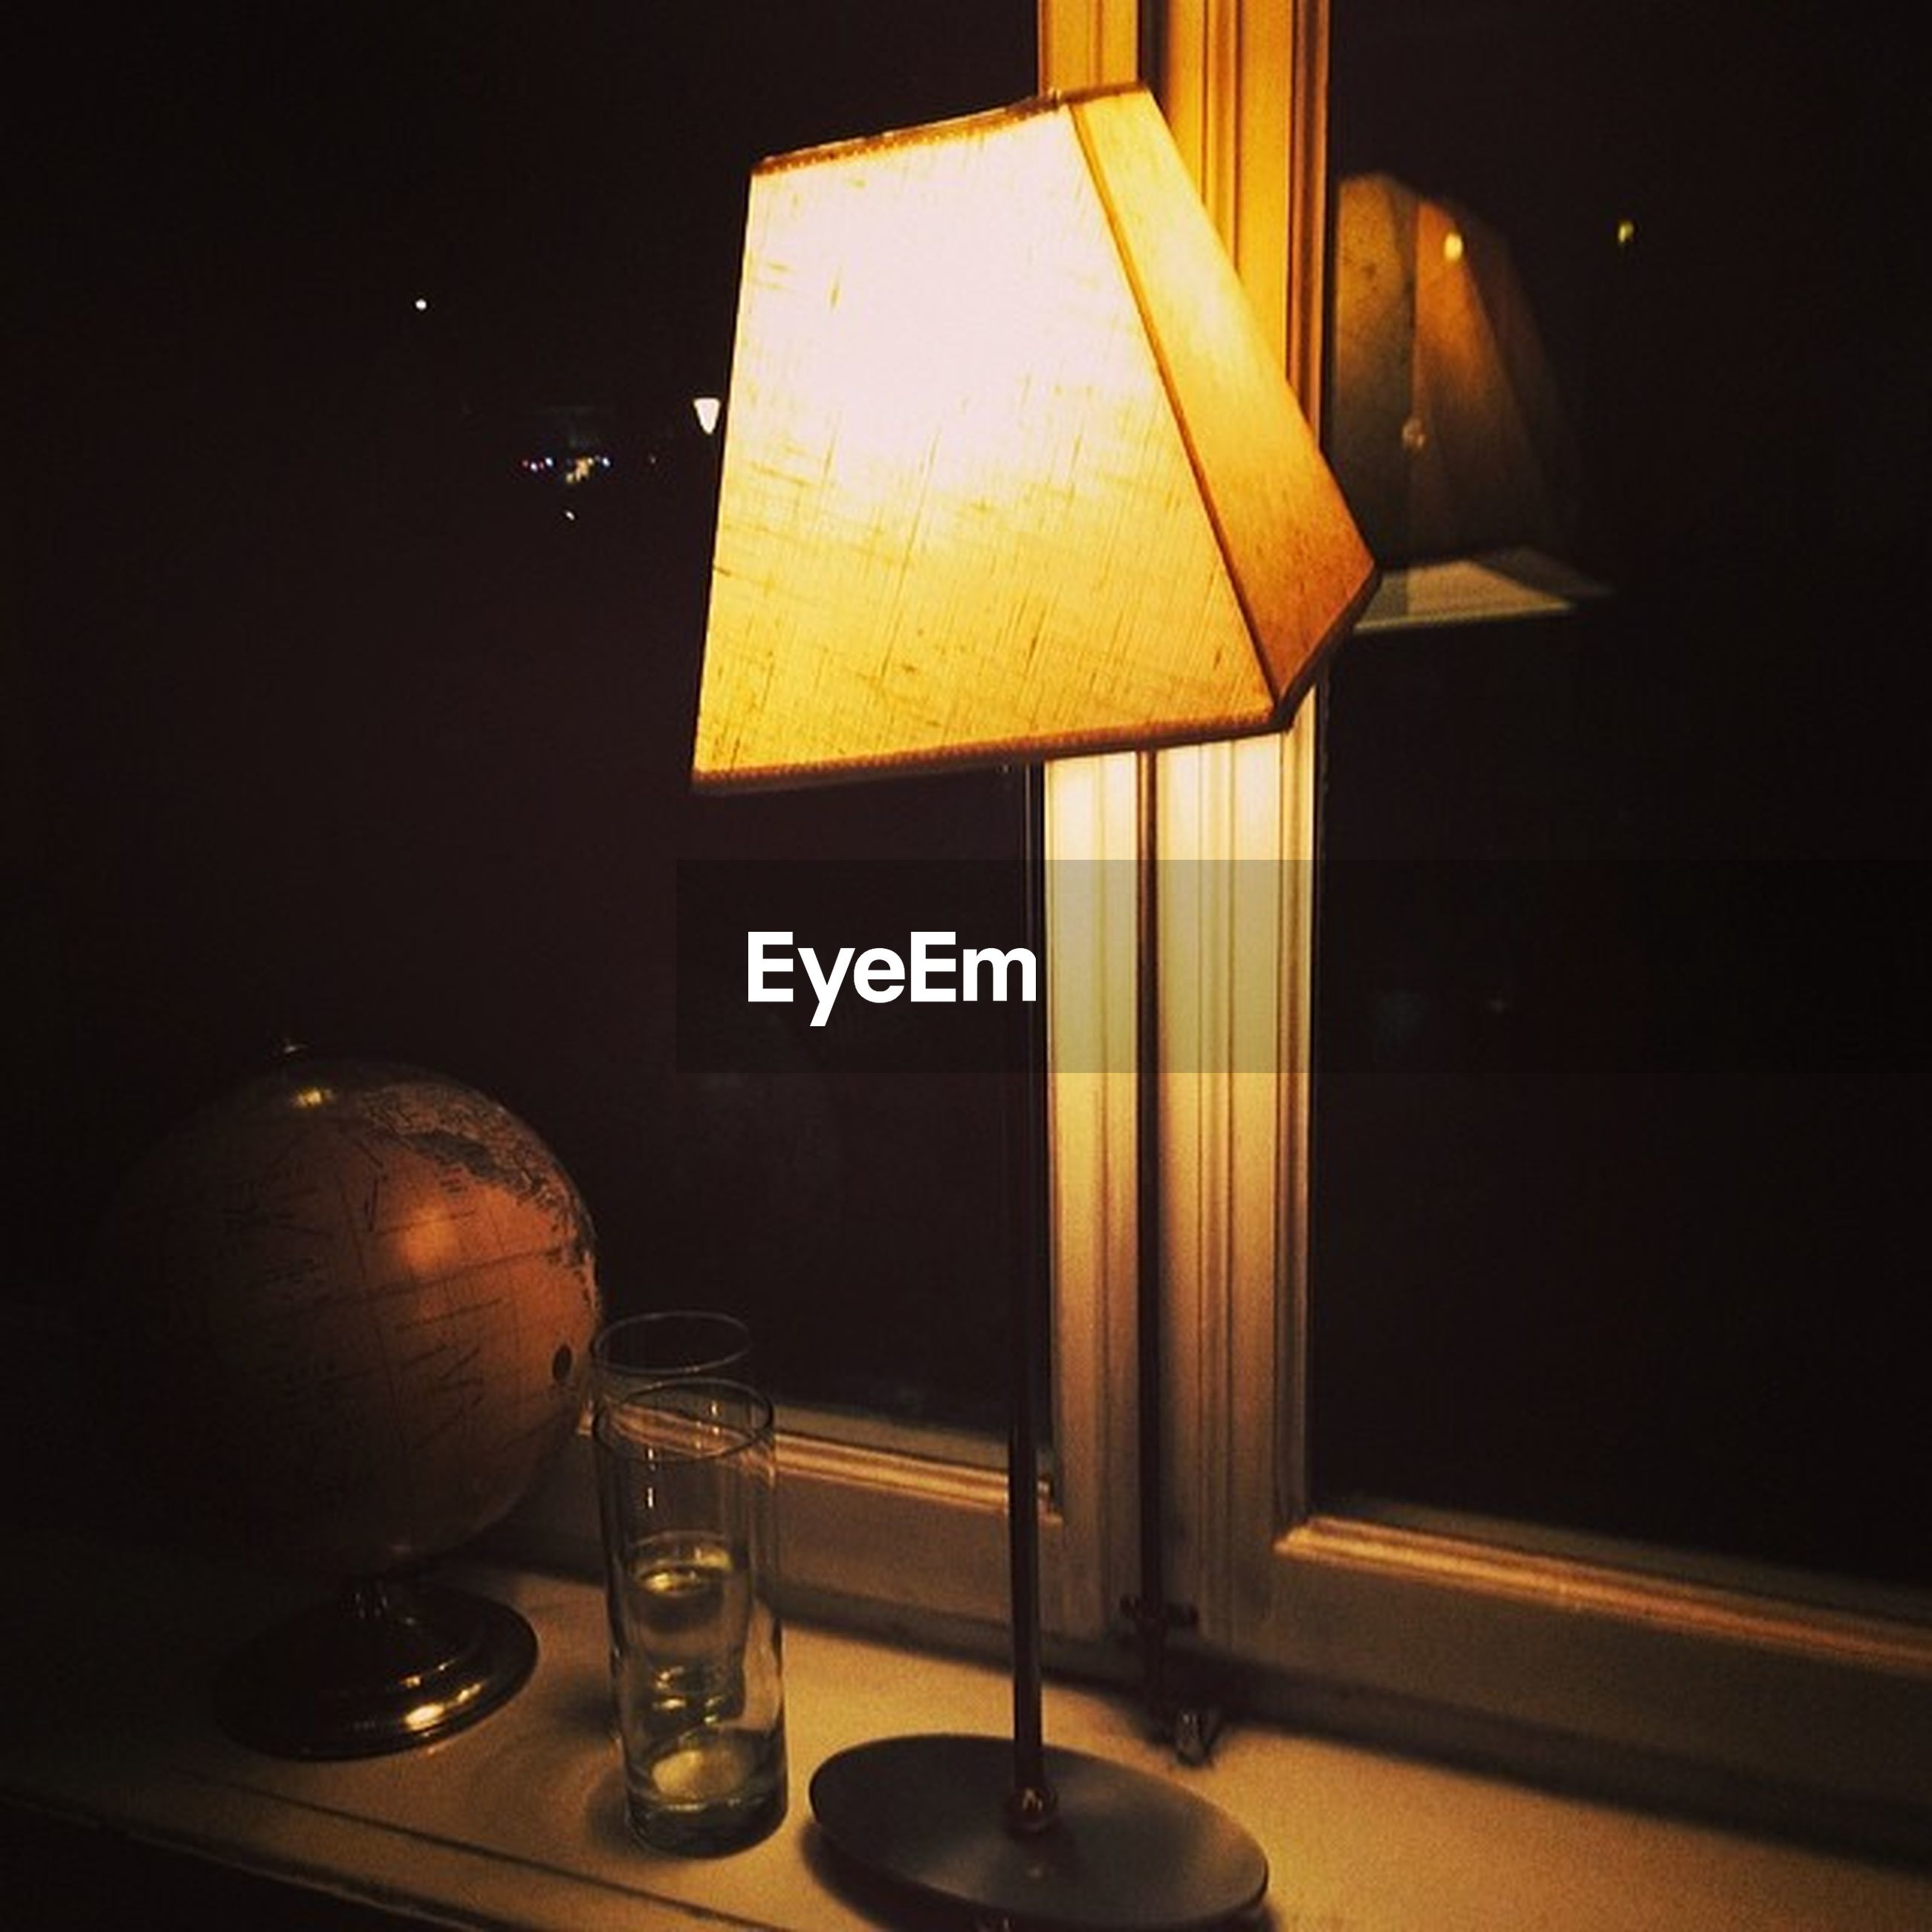 indoors, table, still life, close-up, yellow, illuminated, no people, night, glass - material, home interior, old-fashioned, paper, open, dark, text, single object, retro styled, high angle view, technology, communication